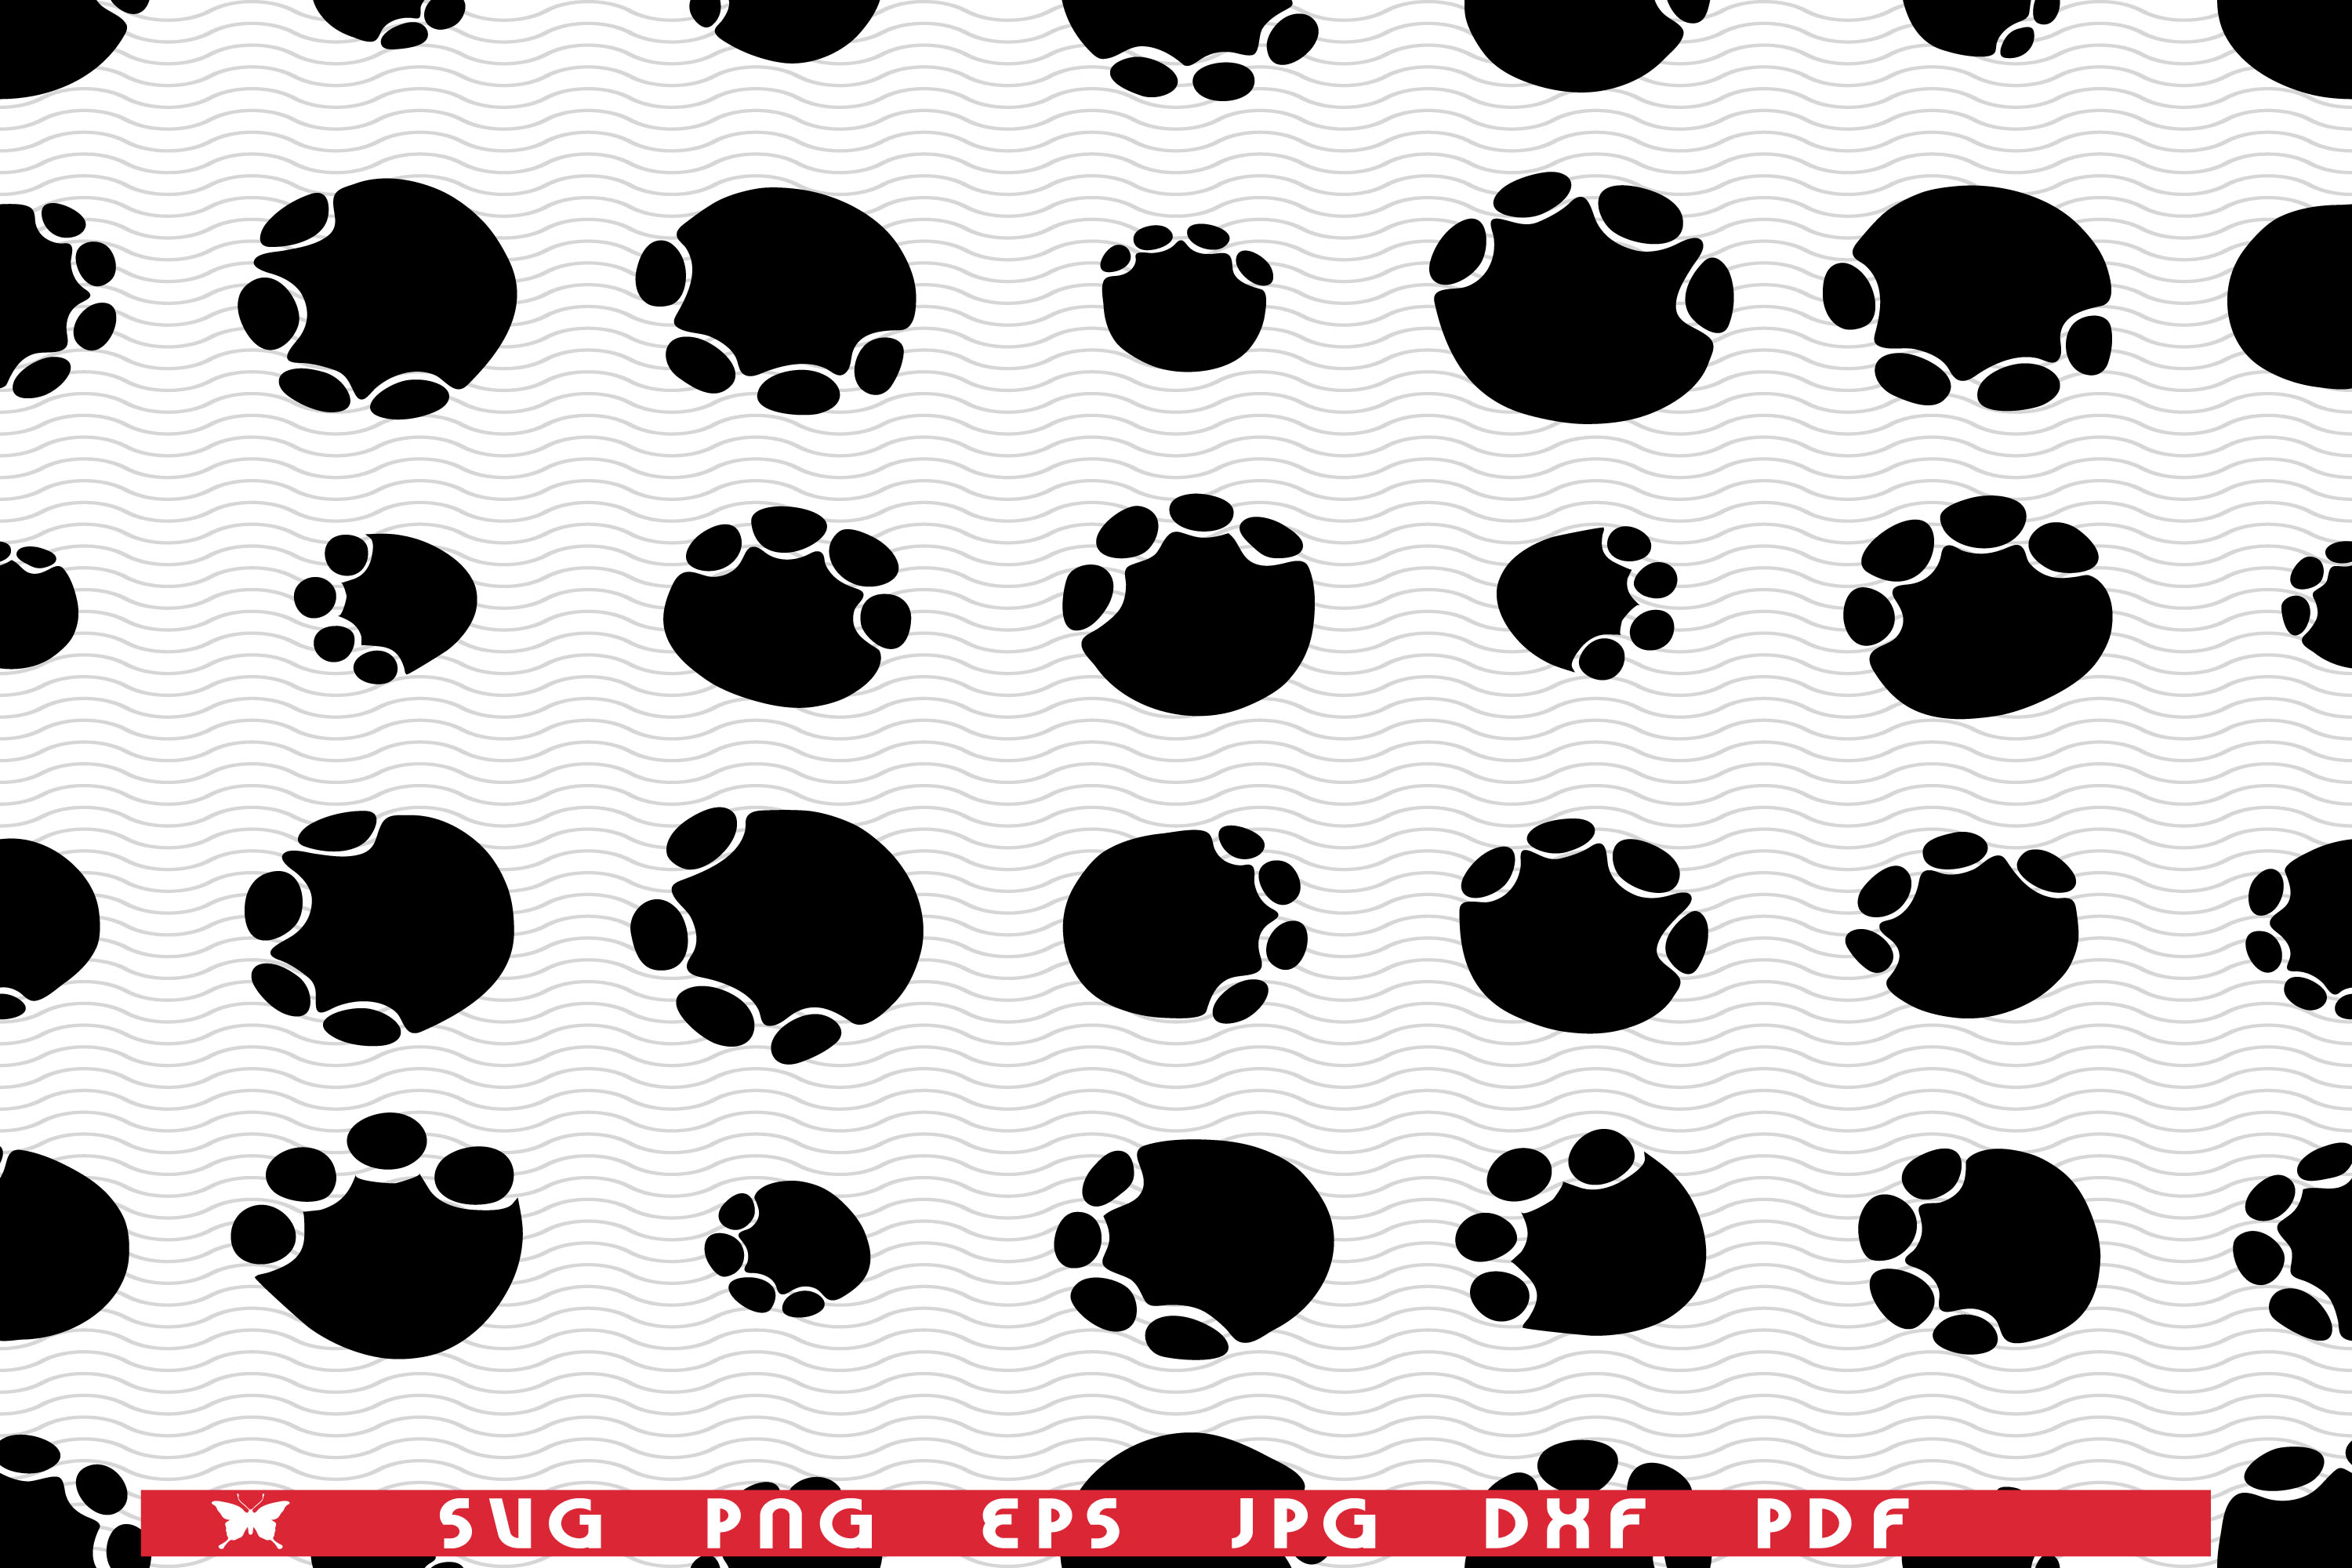 Vector Svg Vs Raster Free Svg Cut Files Create Your Diy Projects Using Your Cricut Explore Silhouette And More The Free Cut Files Include Svg Dxf Eps And Png Files